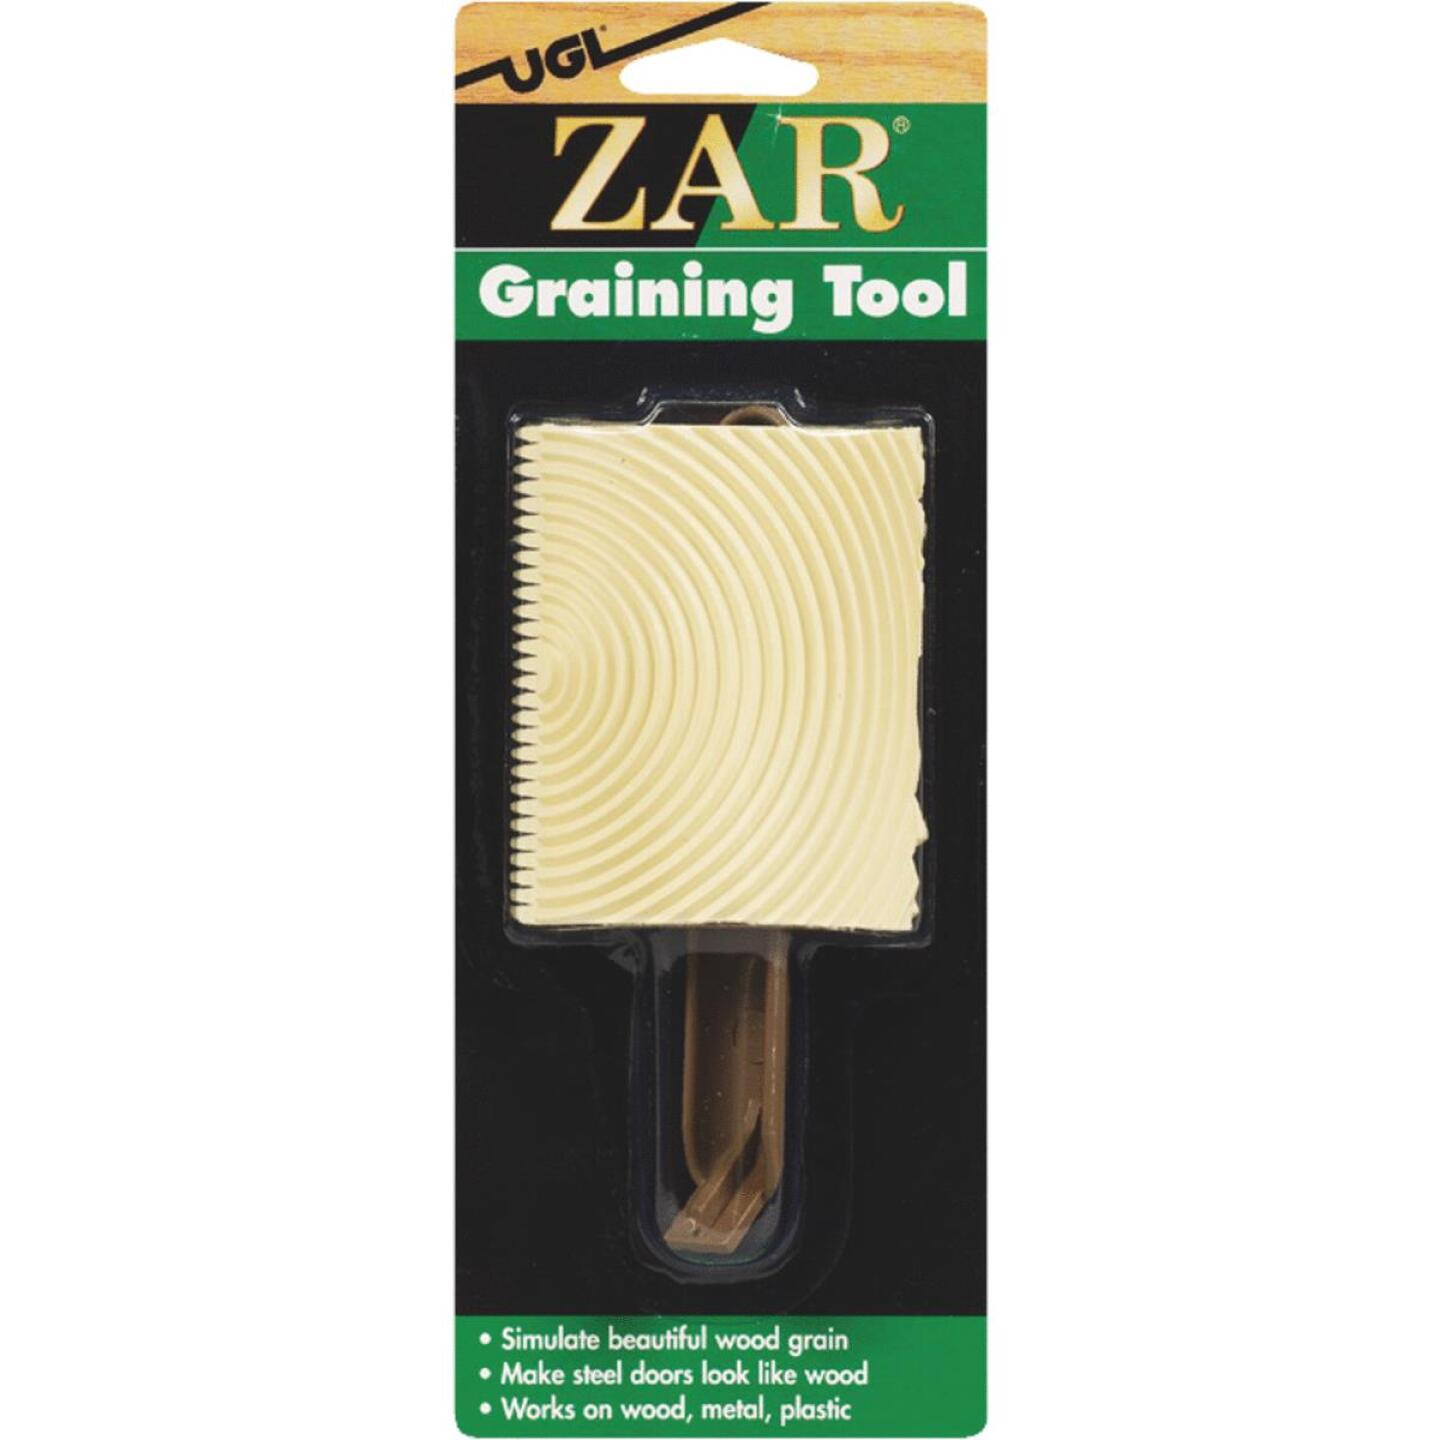 ZAR Wood Graining Tool Image 1